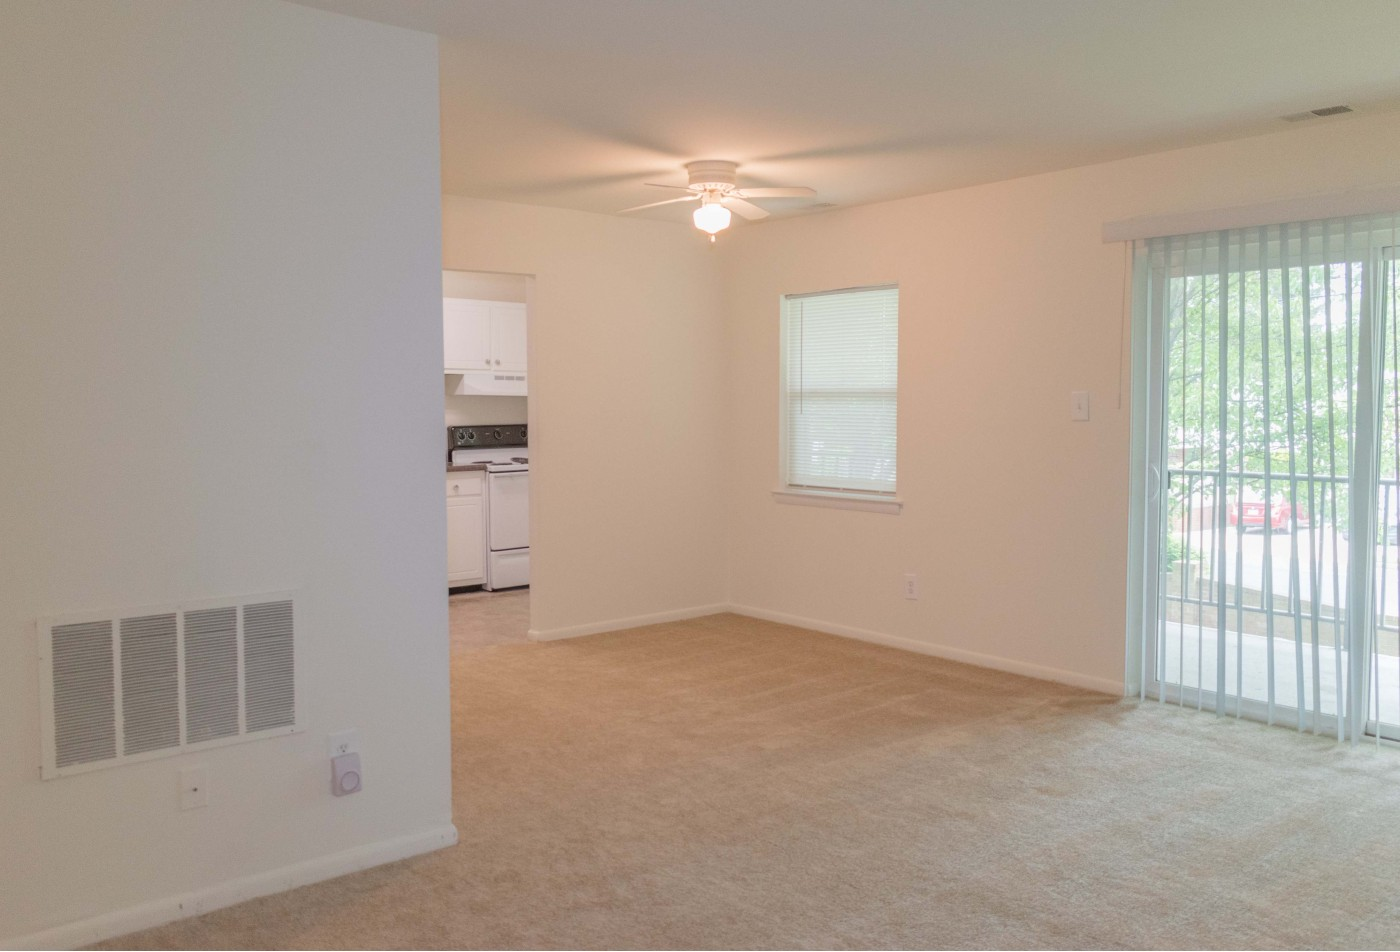 Swimming Pool | Apartment Homes in Norristown, PA | Westover Village Apartments